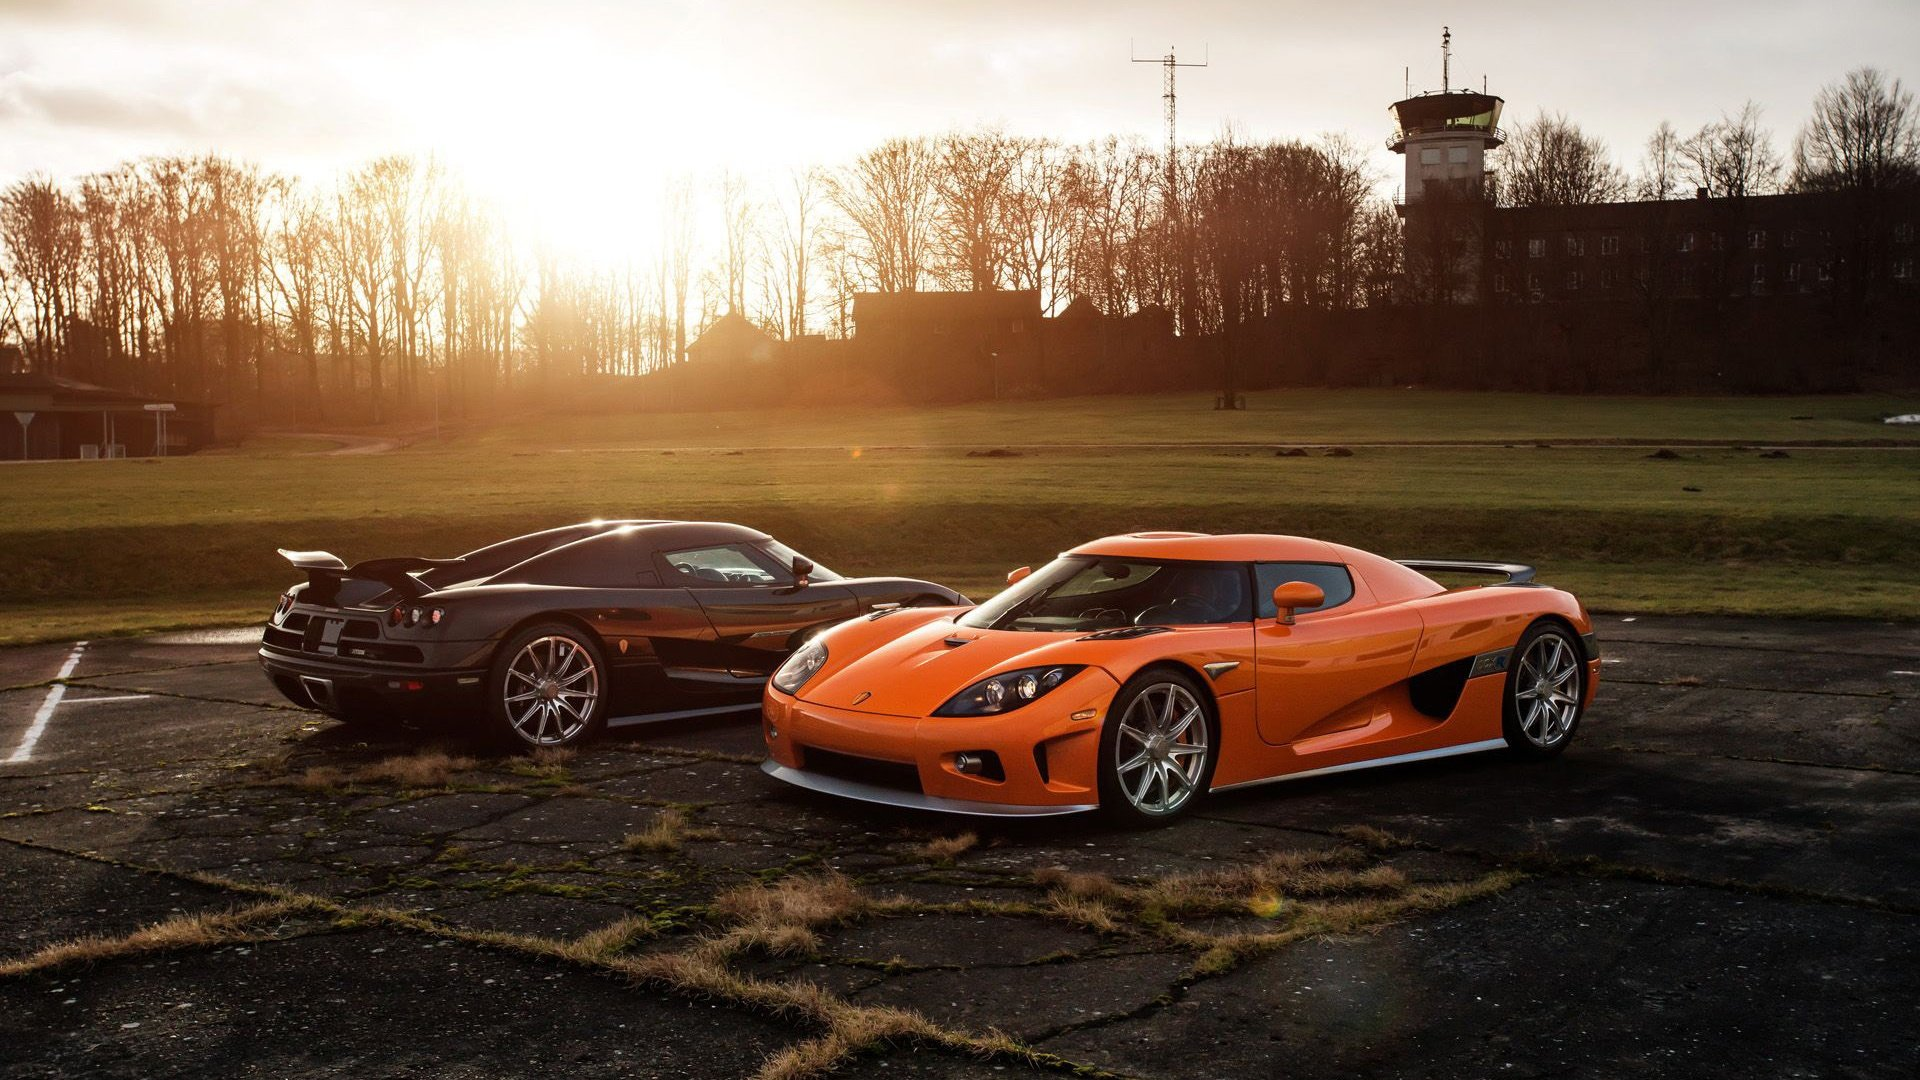 Download hd 1080p Koenigsegg CCX desktop background ID:339202 for free